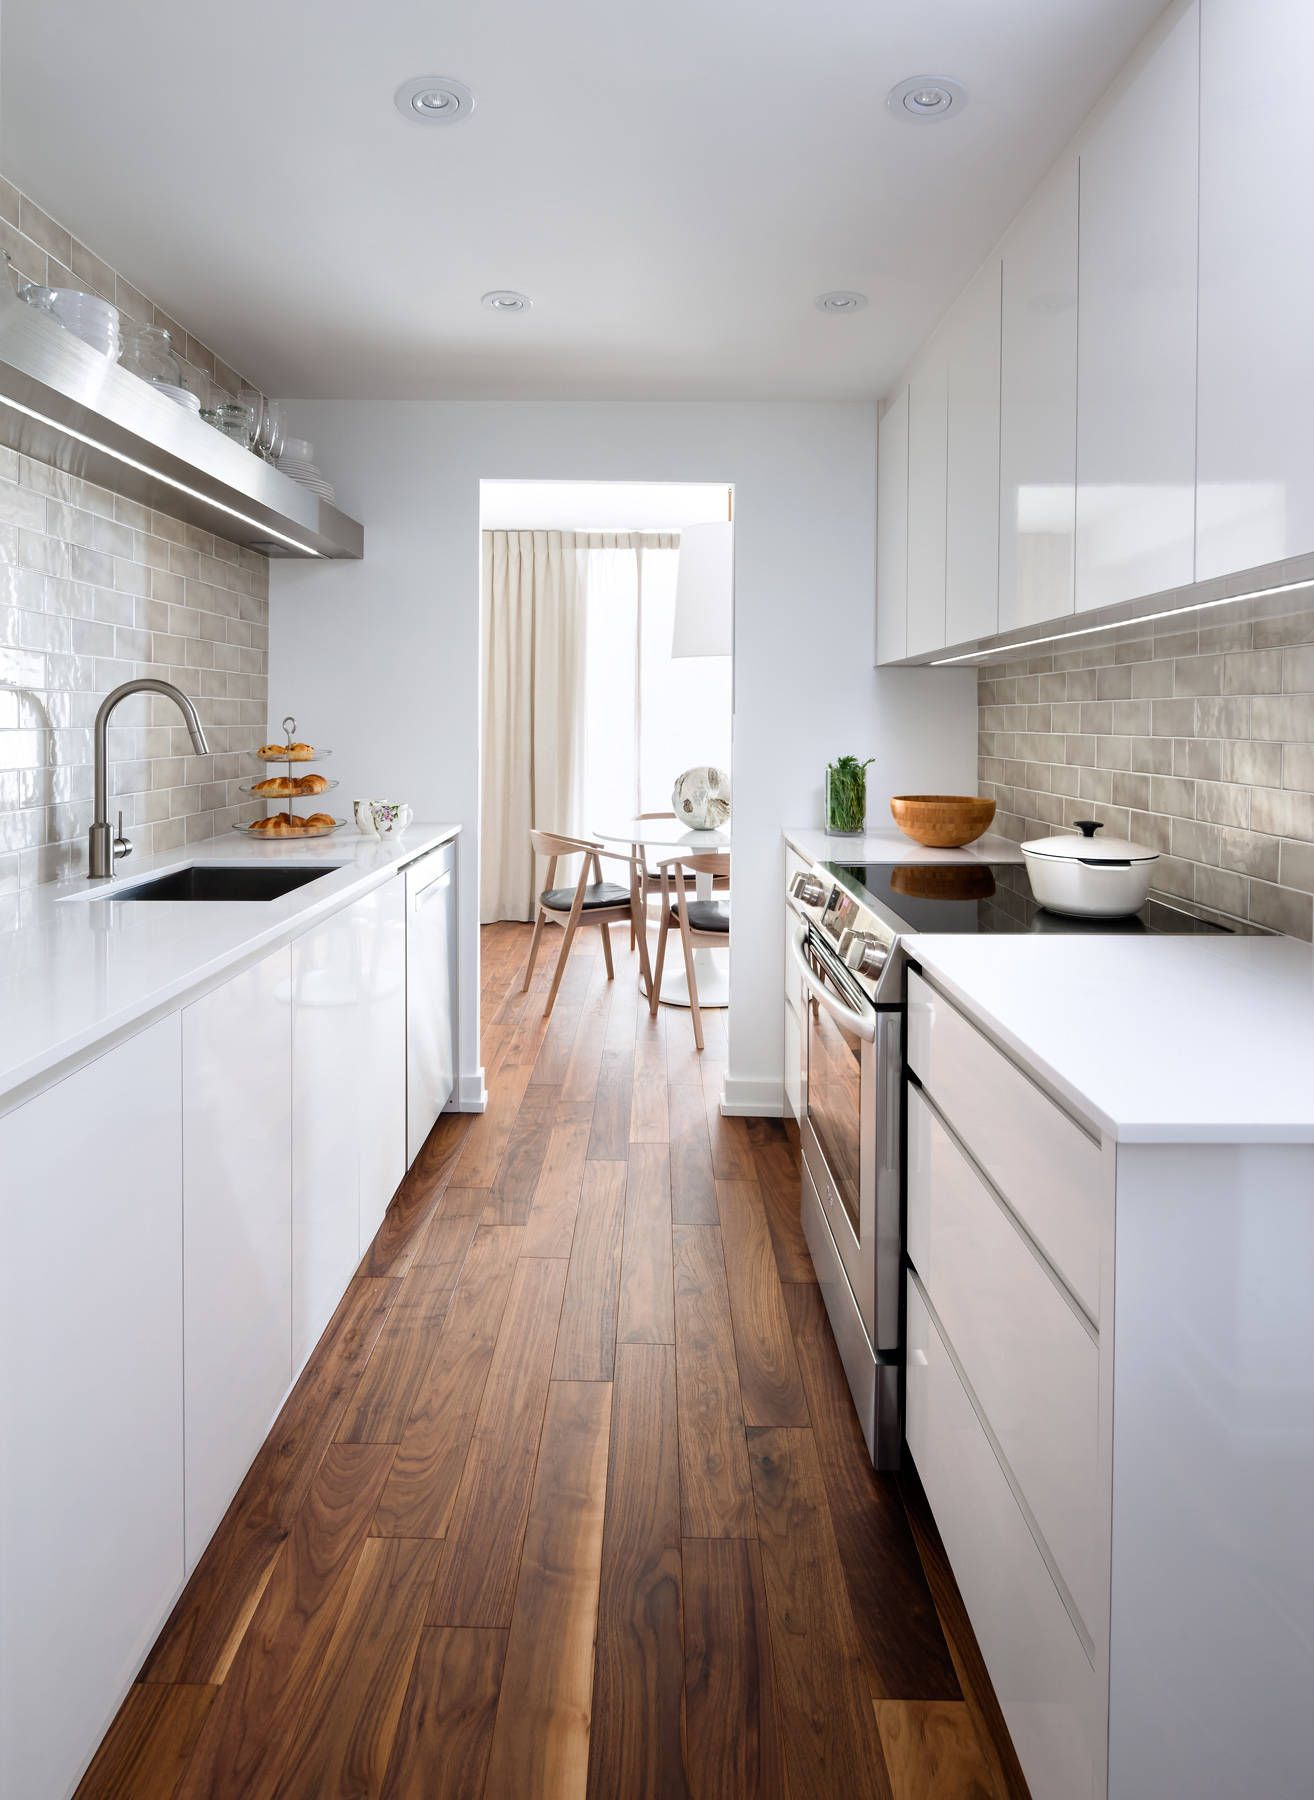 12 tips to make the most of your galley kitchen galley kitchen remodel galley kitchen design on kitchen remodel galley style id=72309